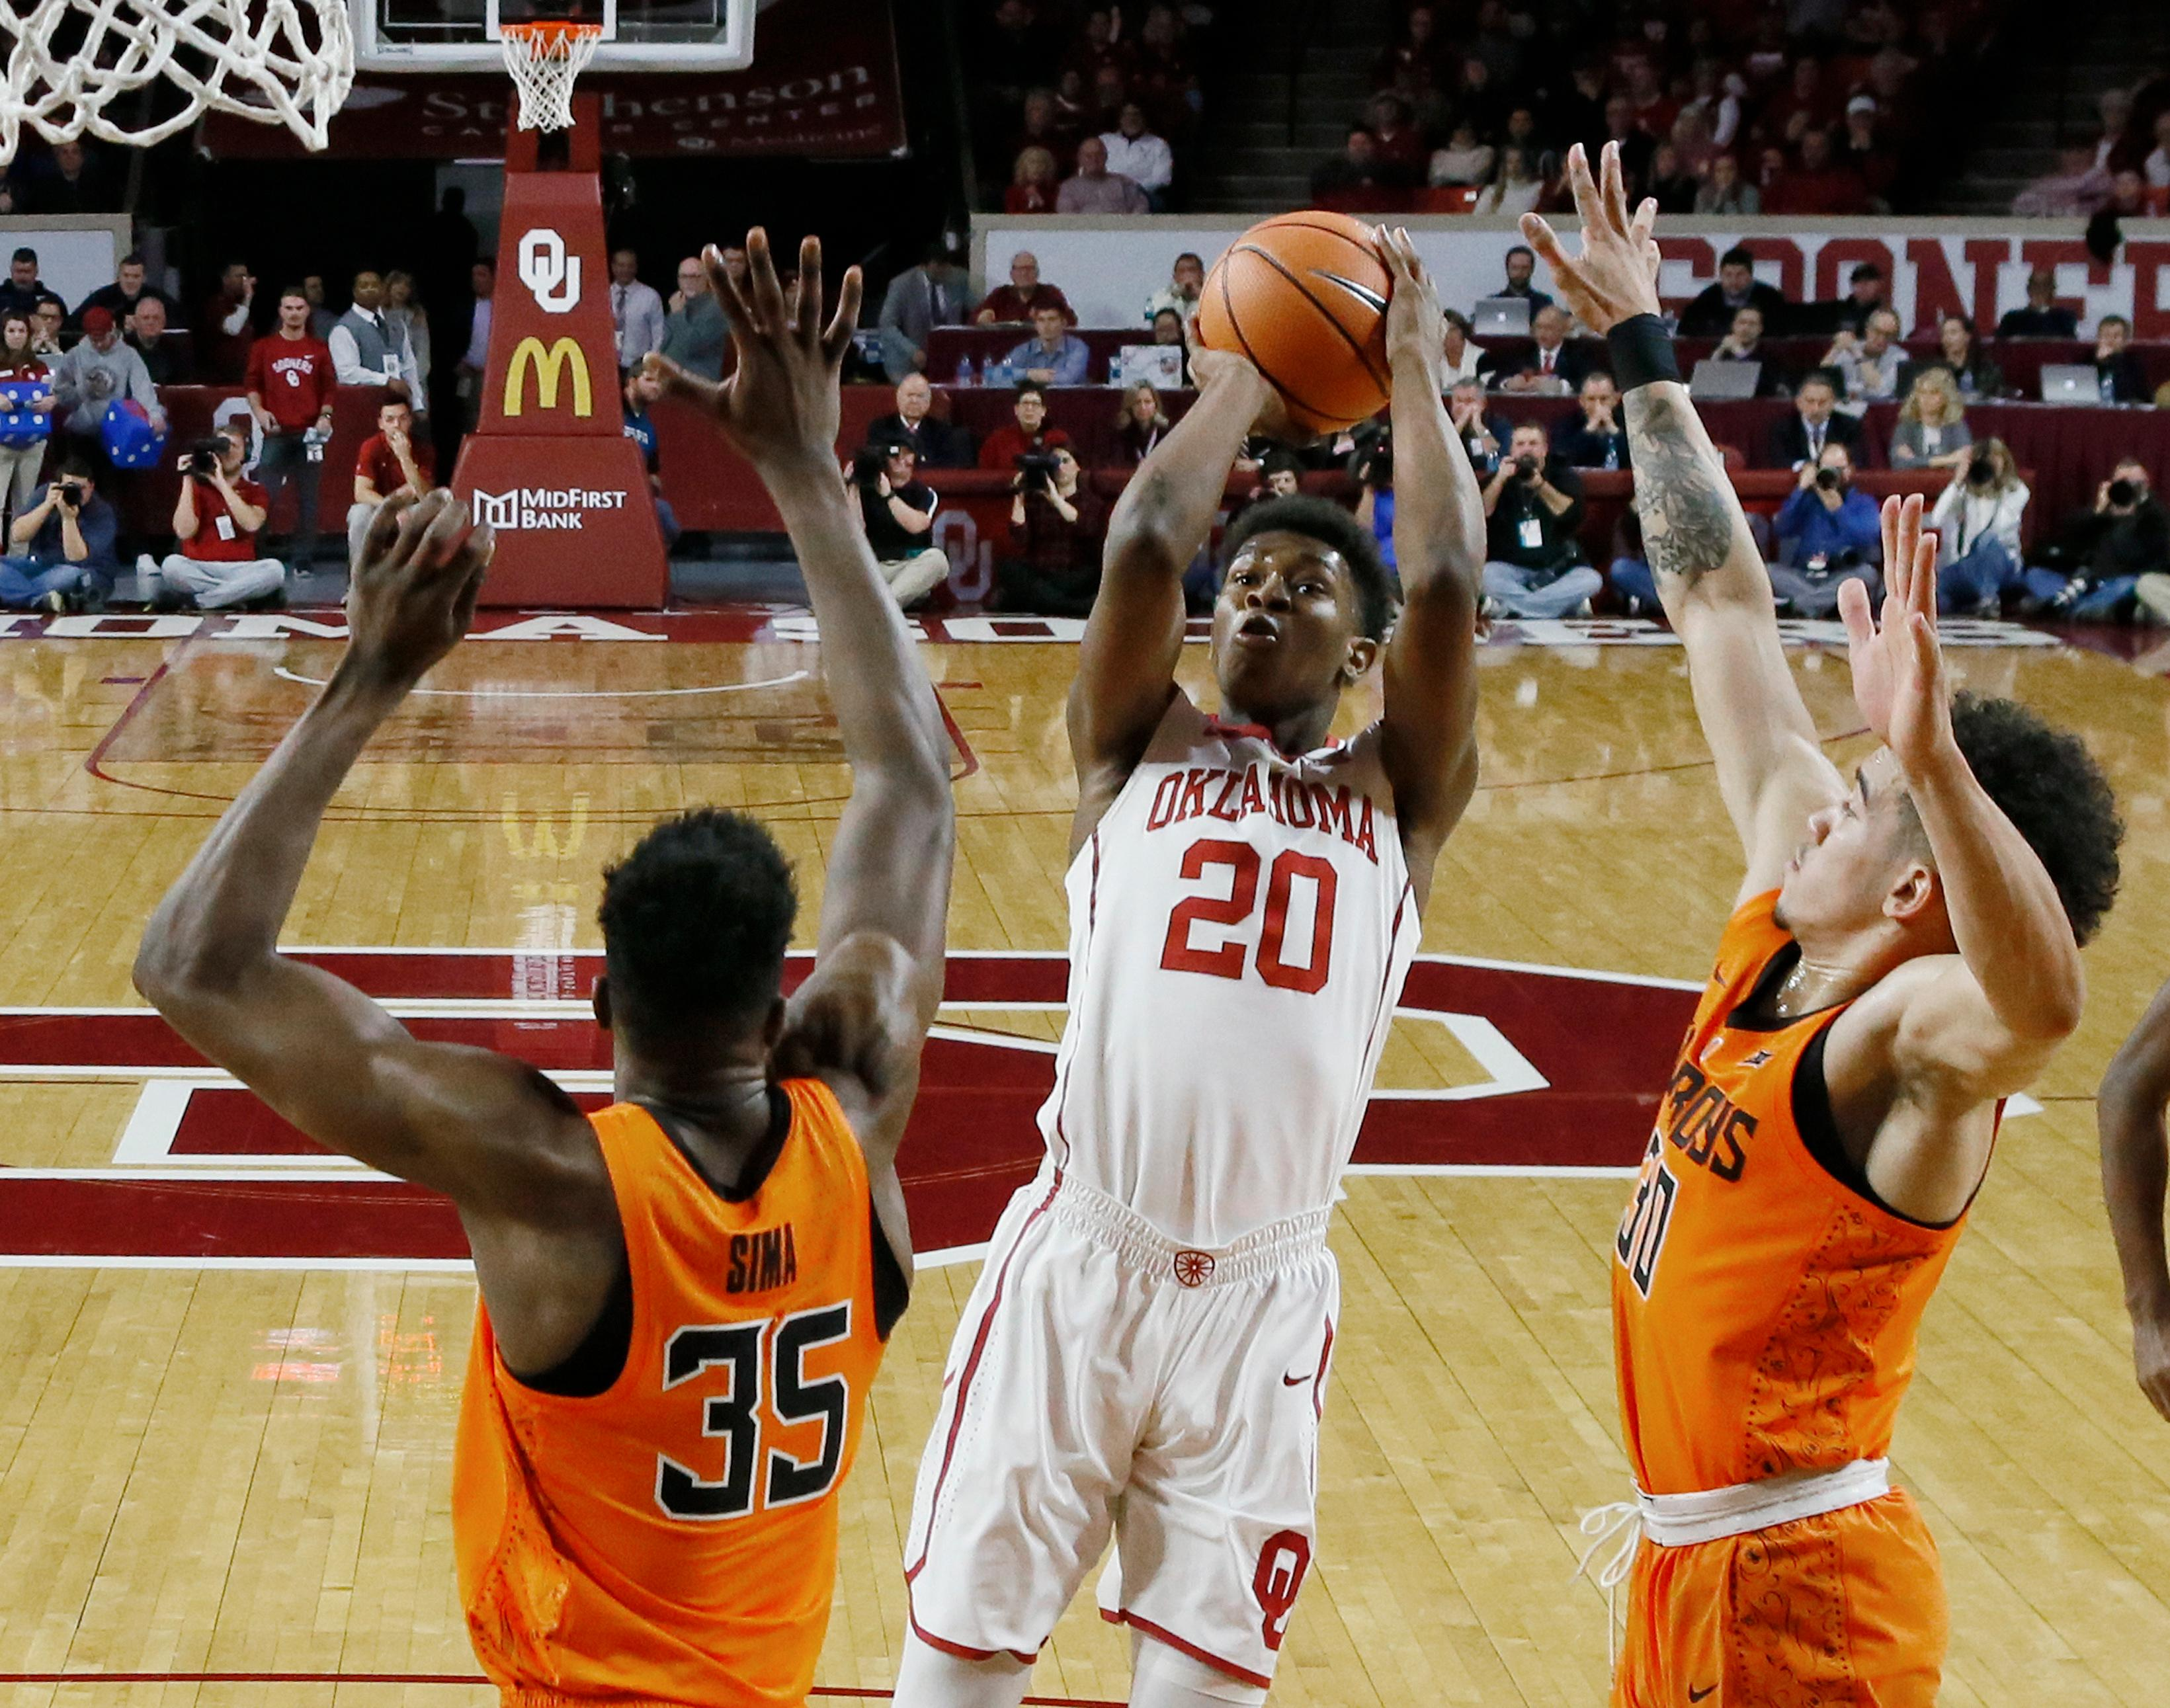 Oklahoma guard Kameron McGusty (20) shots between Oklahoma State forward Yankuba Sima (35) and guard Jeffrey Carroll (30) during the first half of an NCAA college basketball game in Norman, Okla., Wednesday, Jan. 3, 2018. (AP Photo/Sue Ogrocki)